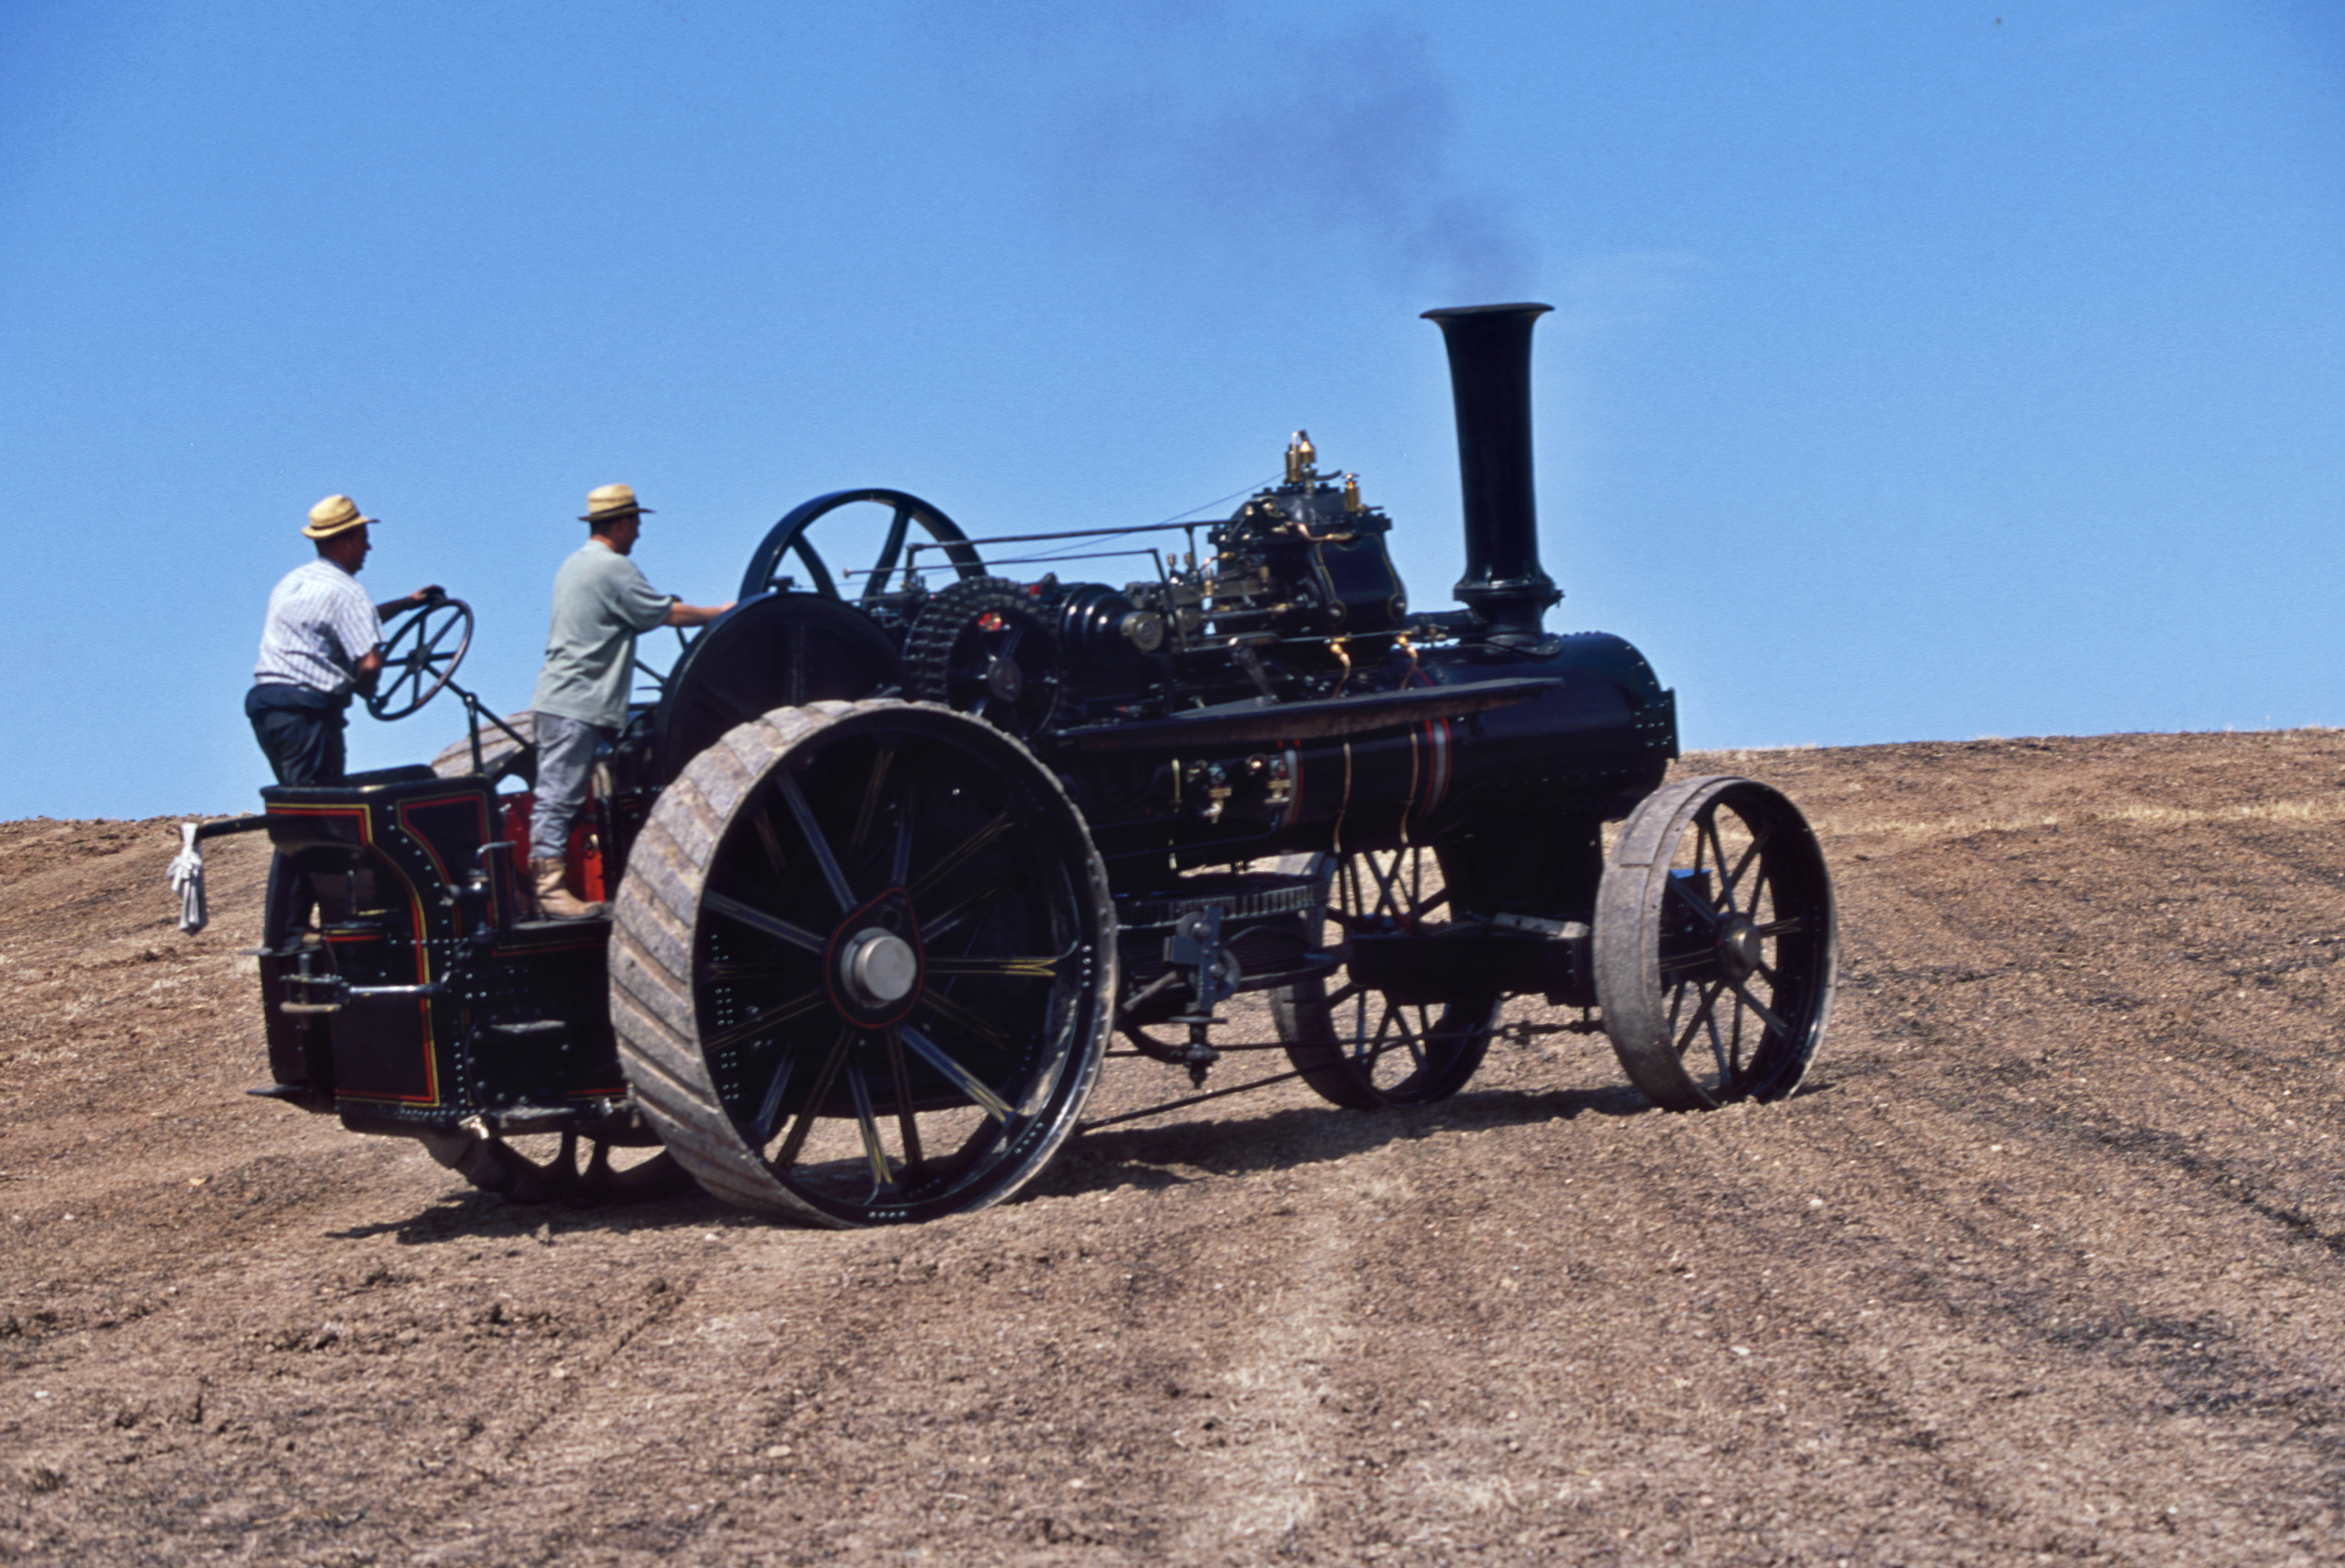 1800s-steam-traction-engine-tractor-in-agricultural-field ...